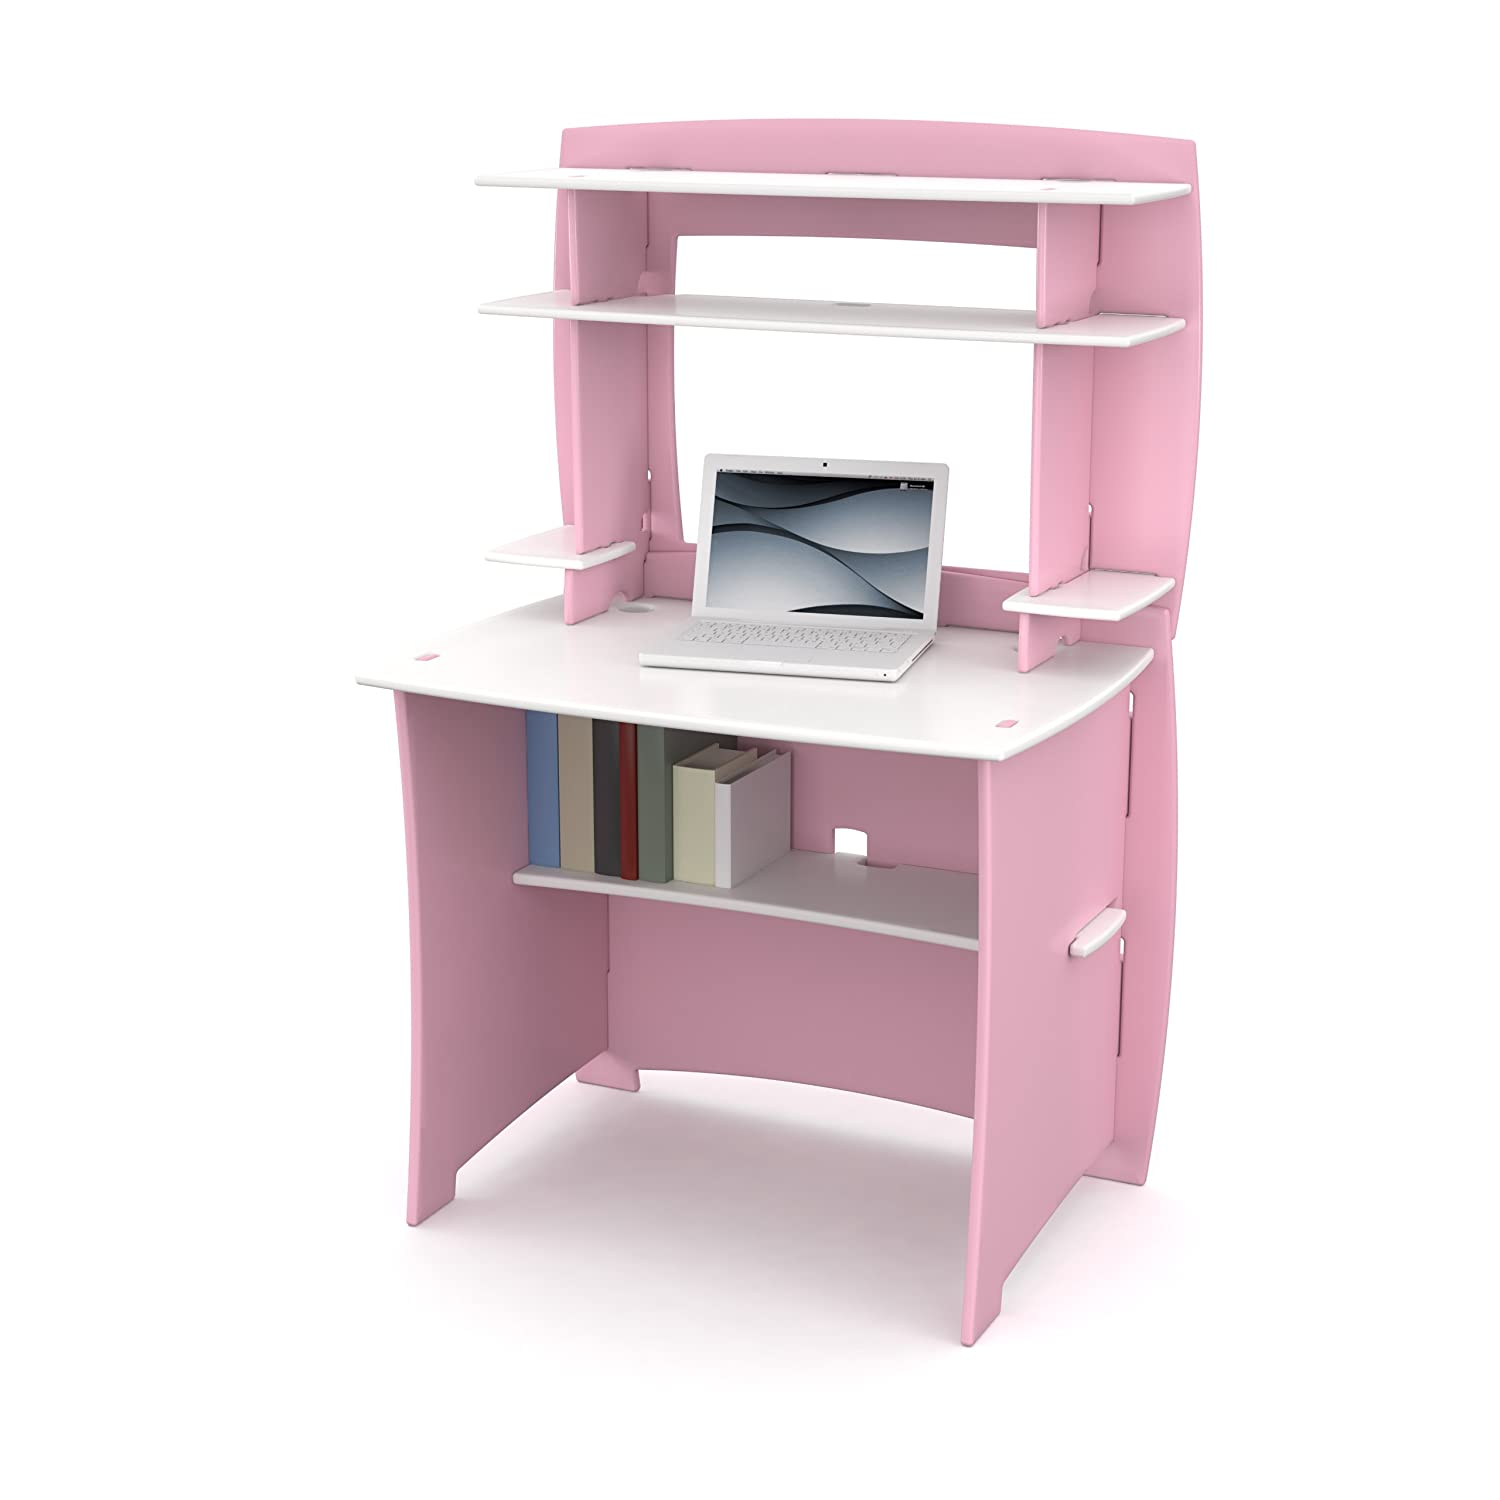 Pink Desk Will Be A Thing Of The Past And Here S Why